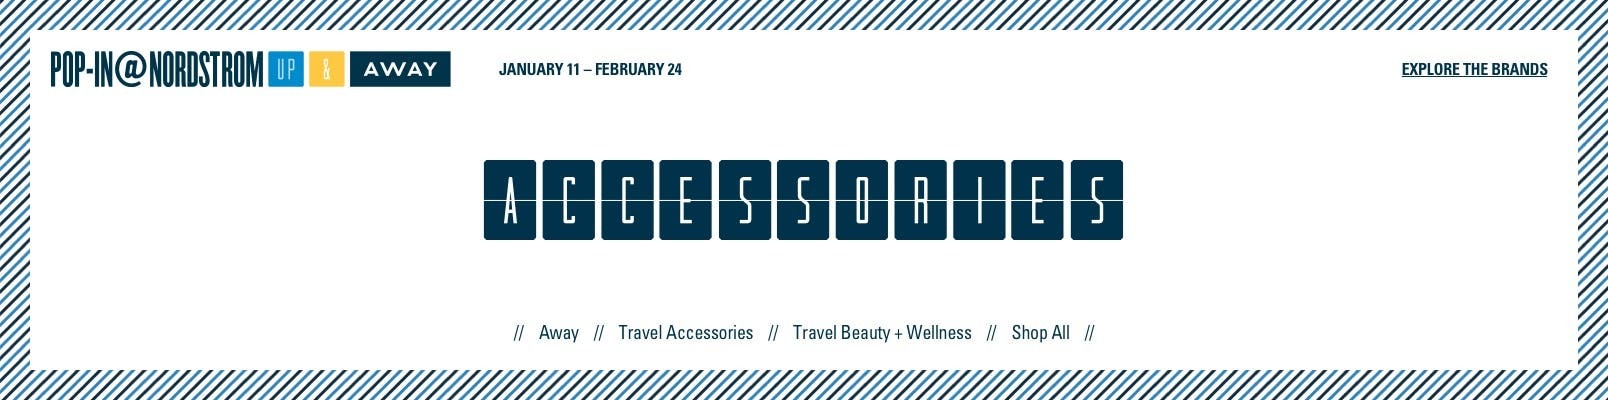 Pop-In@Nordstrom Up & Away. January 11 to February 24. Shop Travel Accessories.